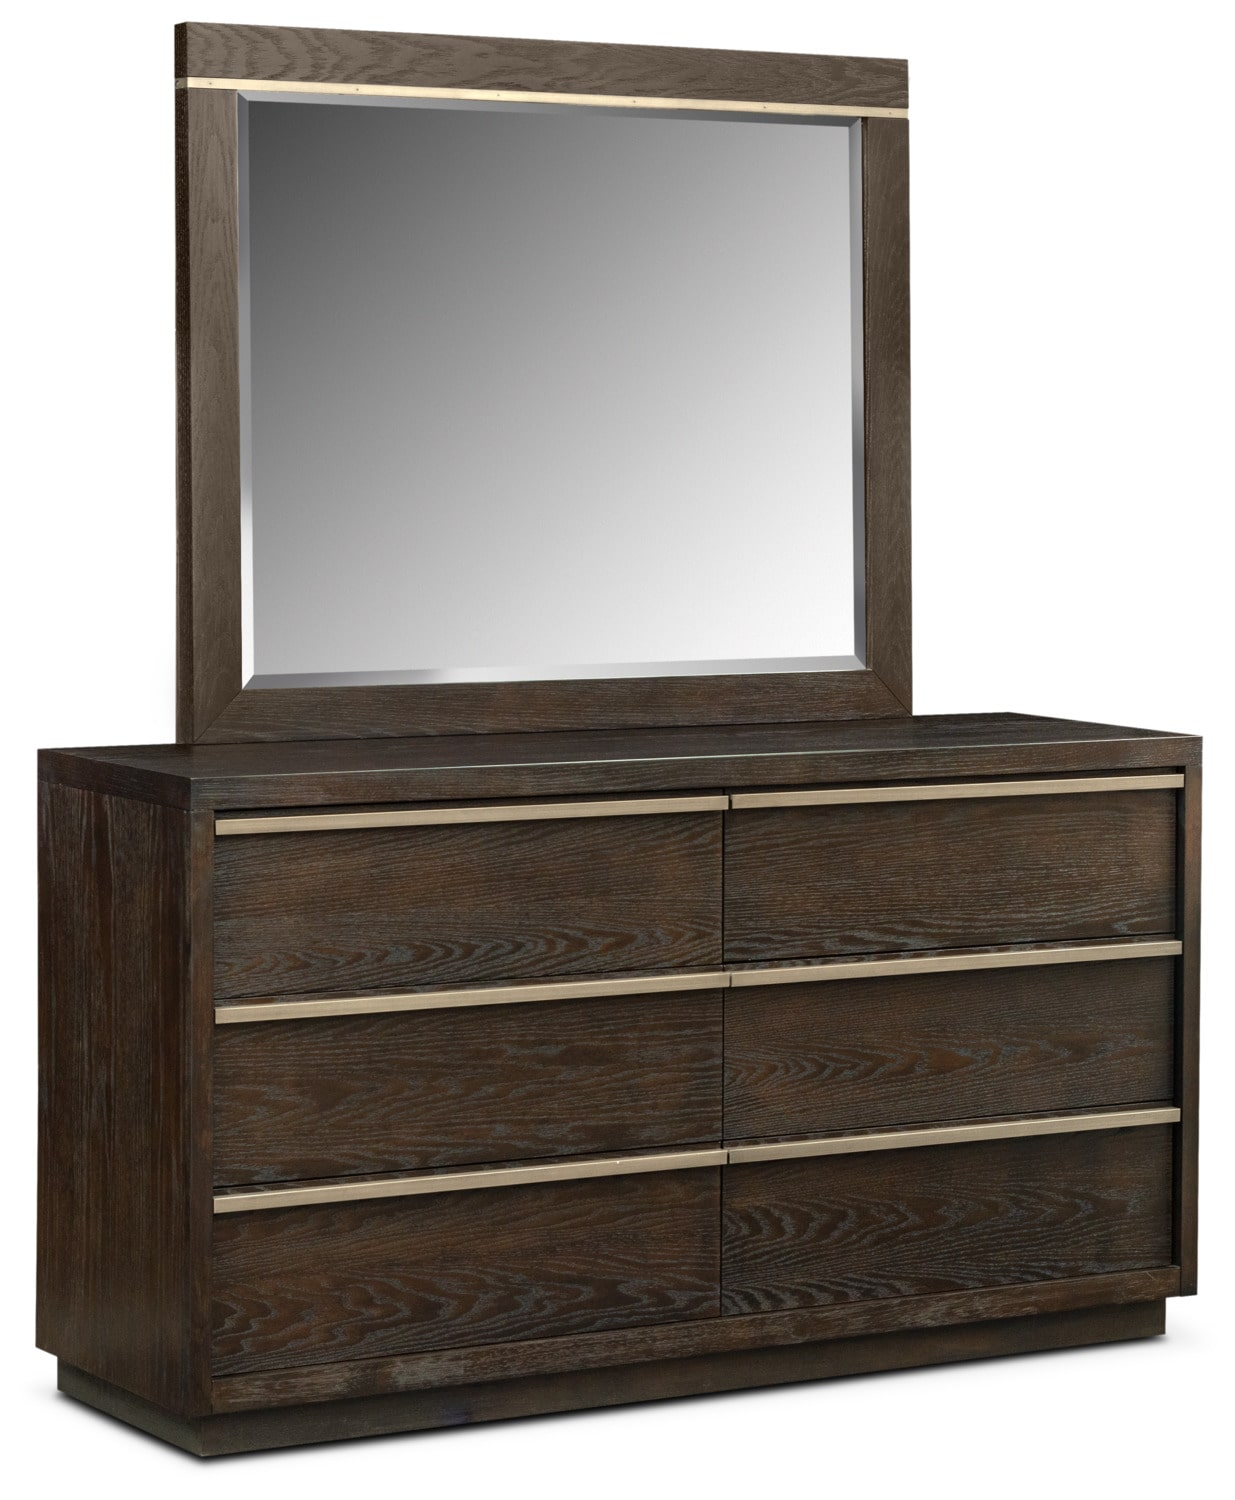 Gavin Dresser and Mirror - Brownstone